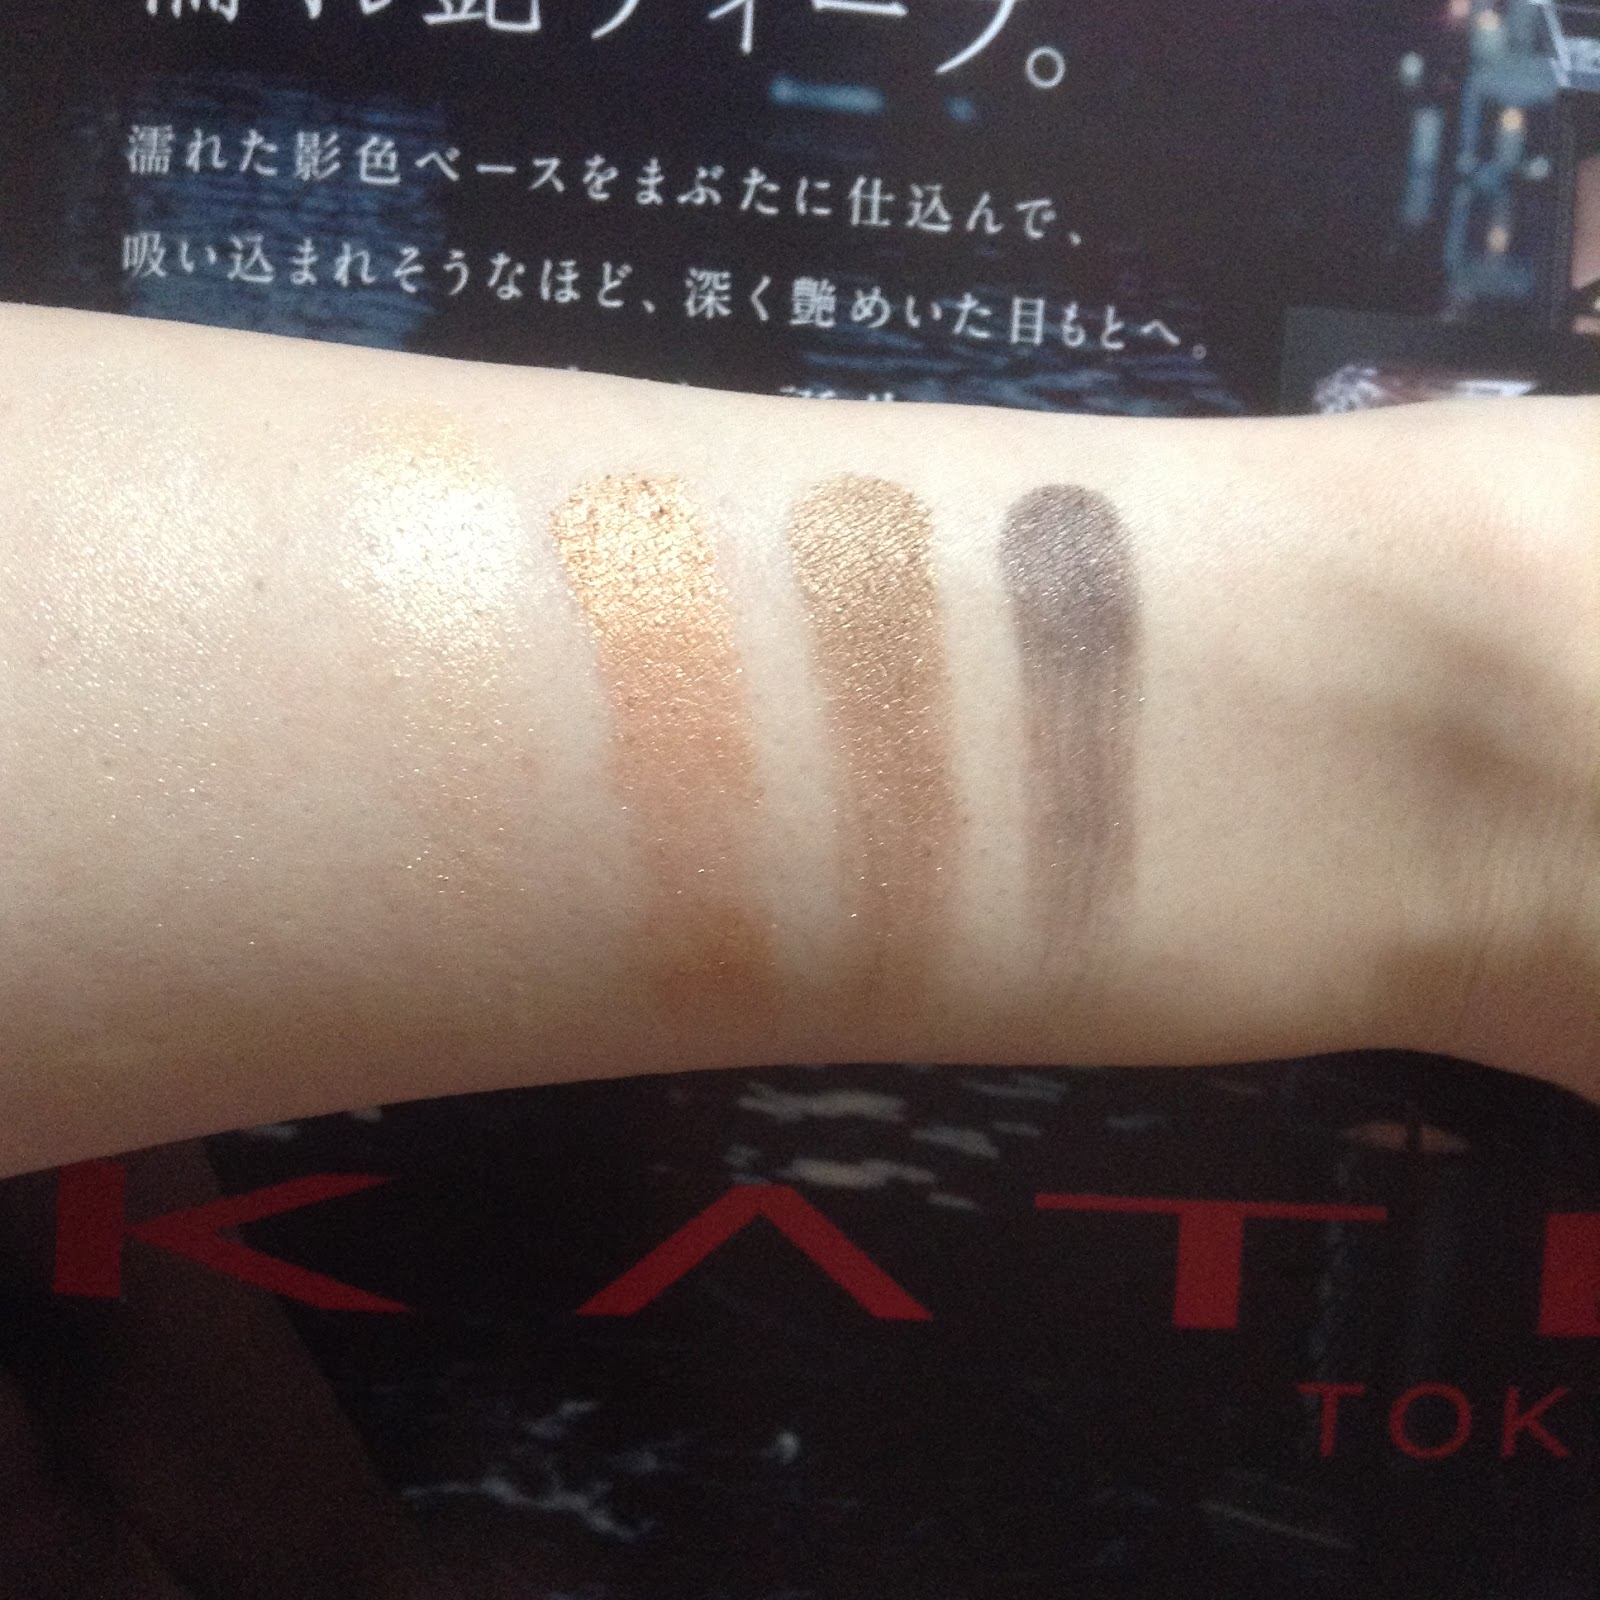 Kate Tokyo eye shadow swatches